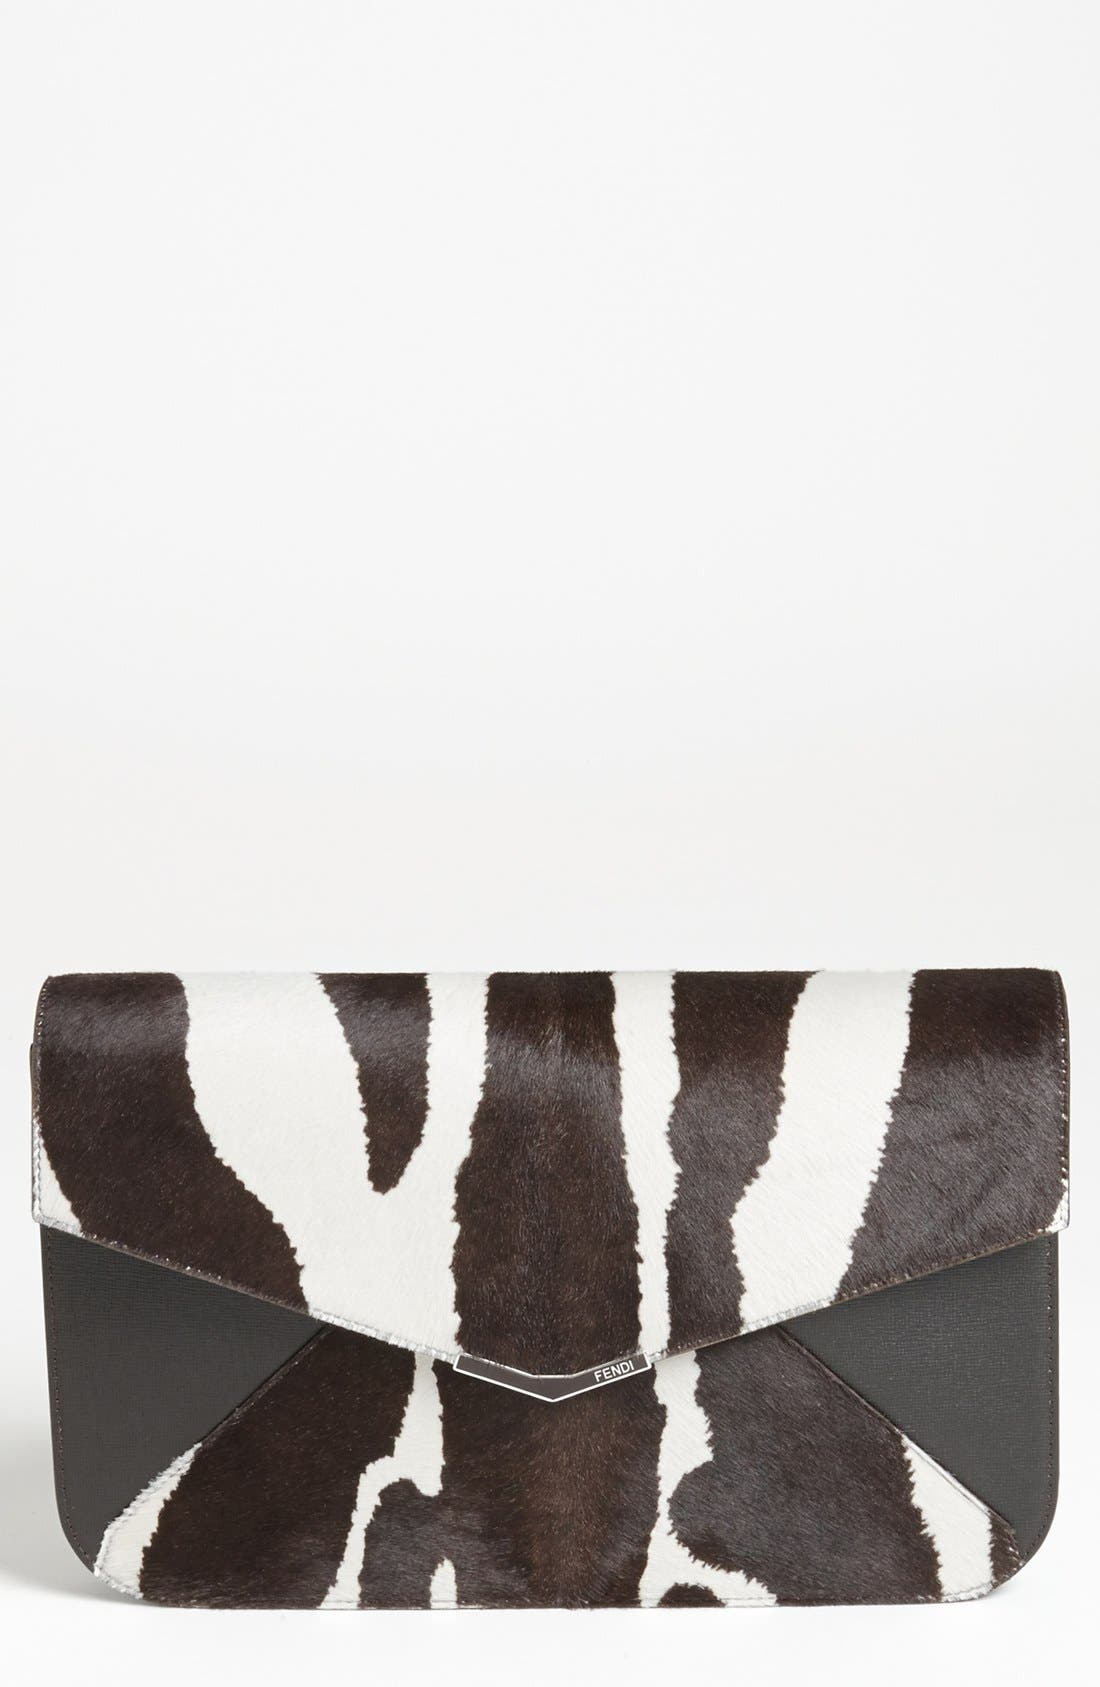 Alternate Image 1 Selected - Fendi '2Jours - Large' Calf Hair & Leather Clutch